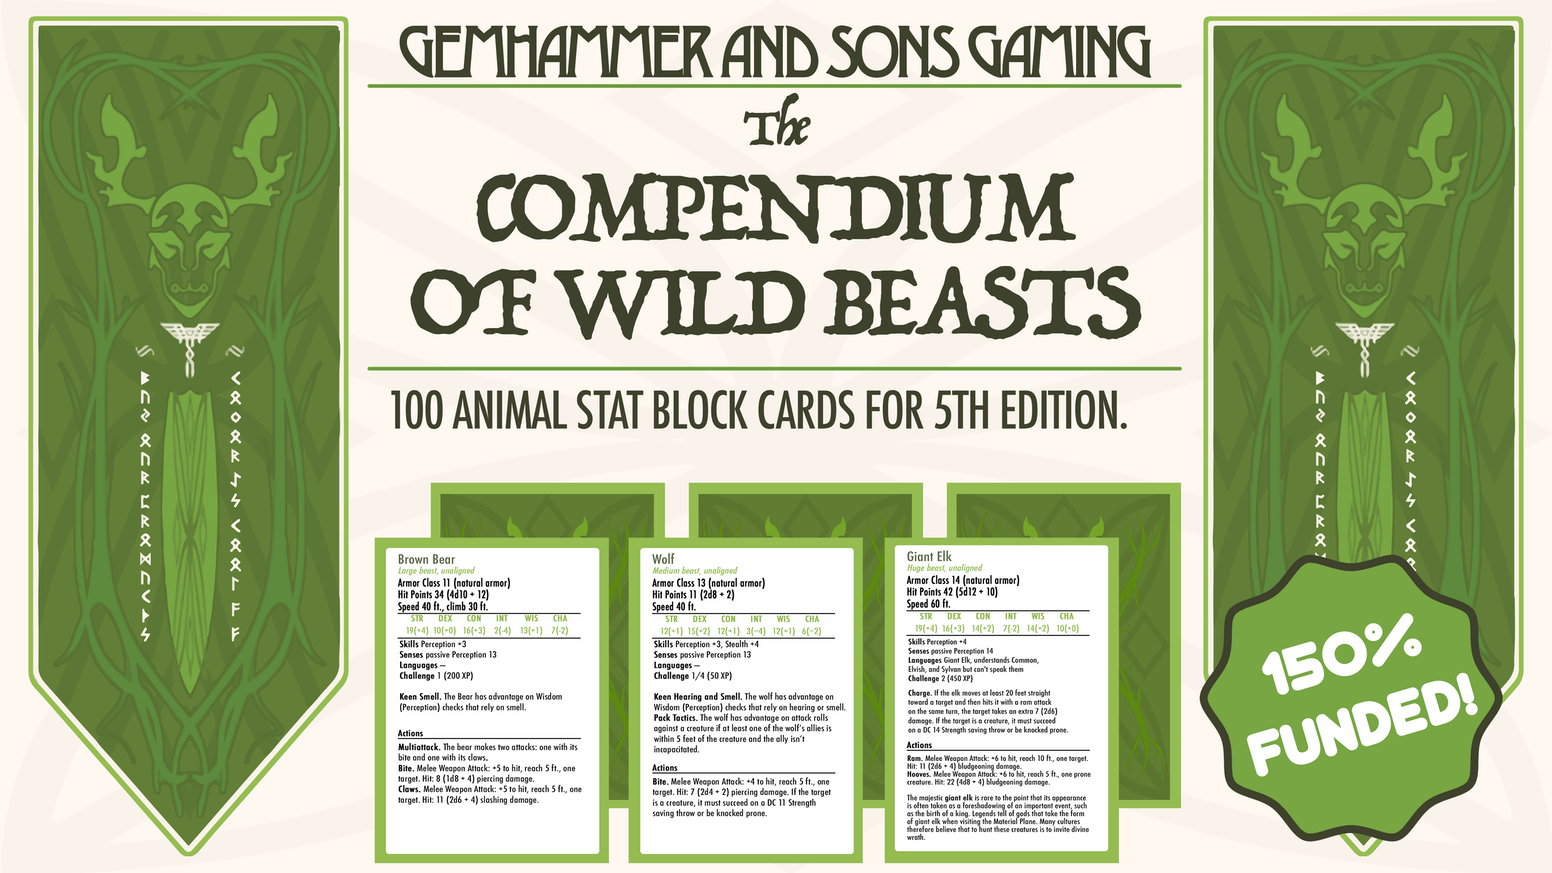 The Compendium Of Wild Beasts 5e By Gemhammer Games Kickstarter